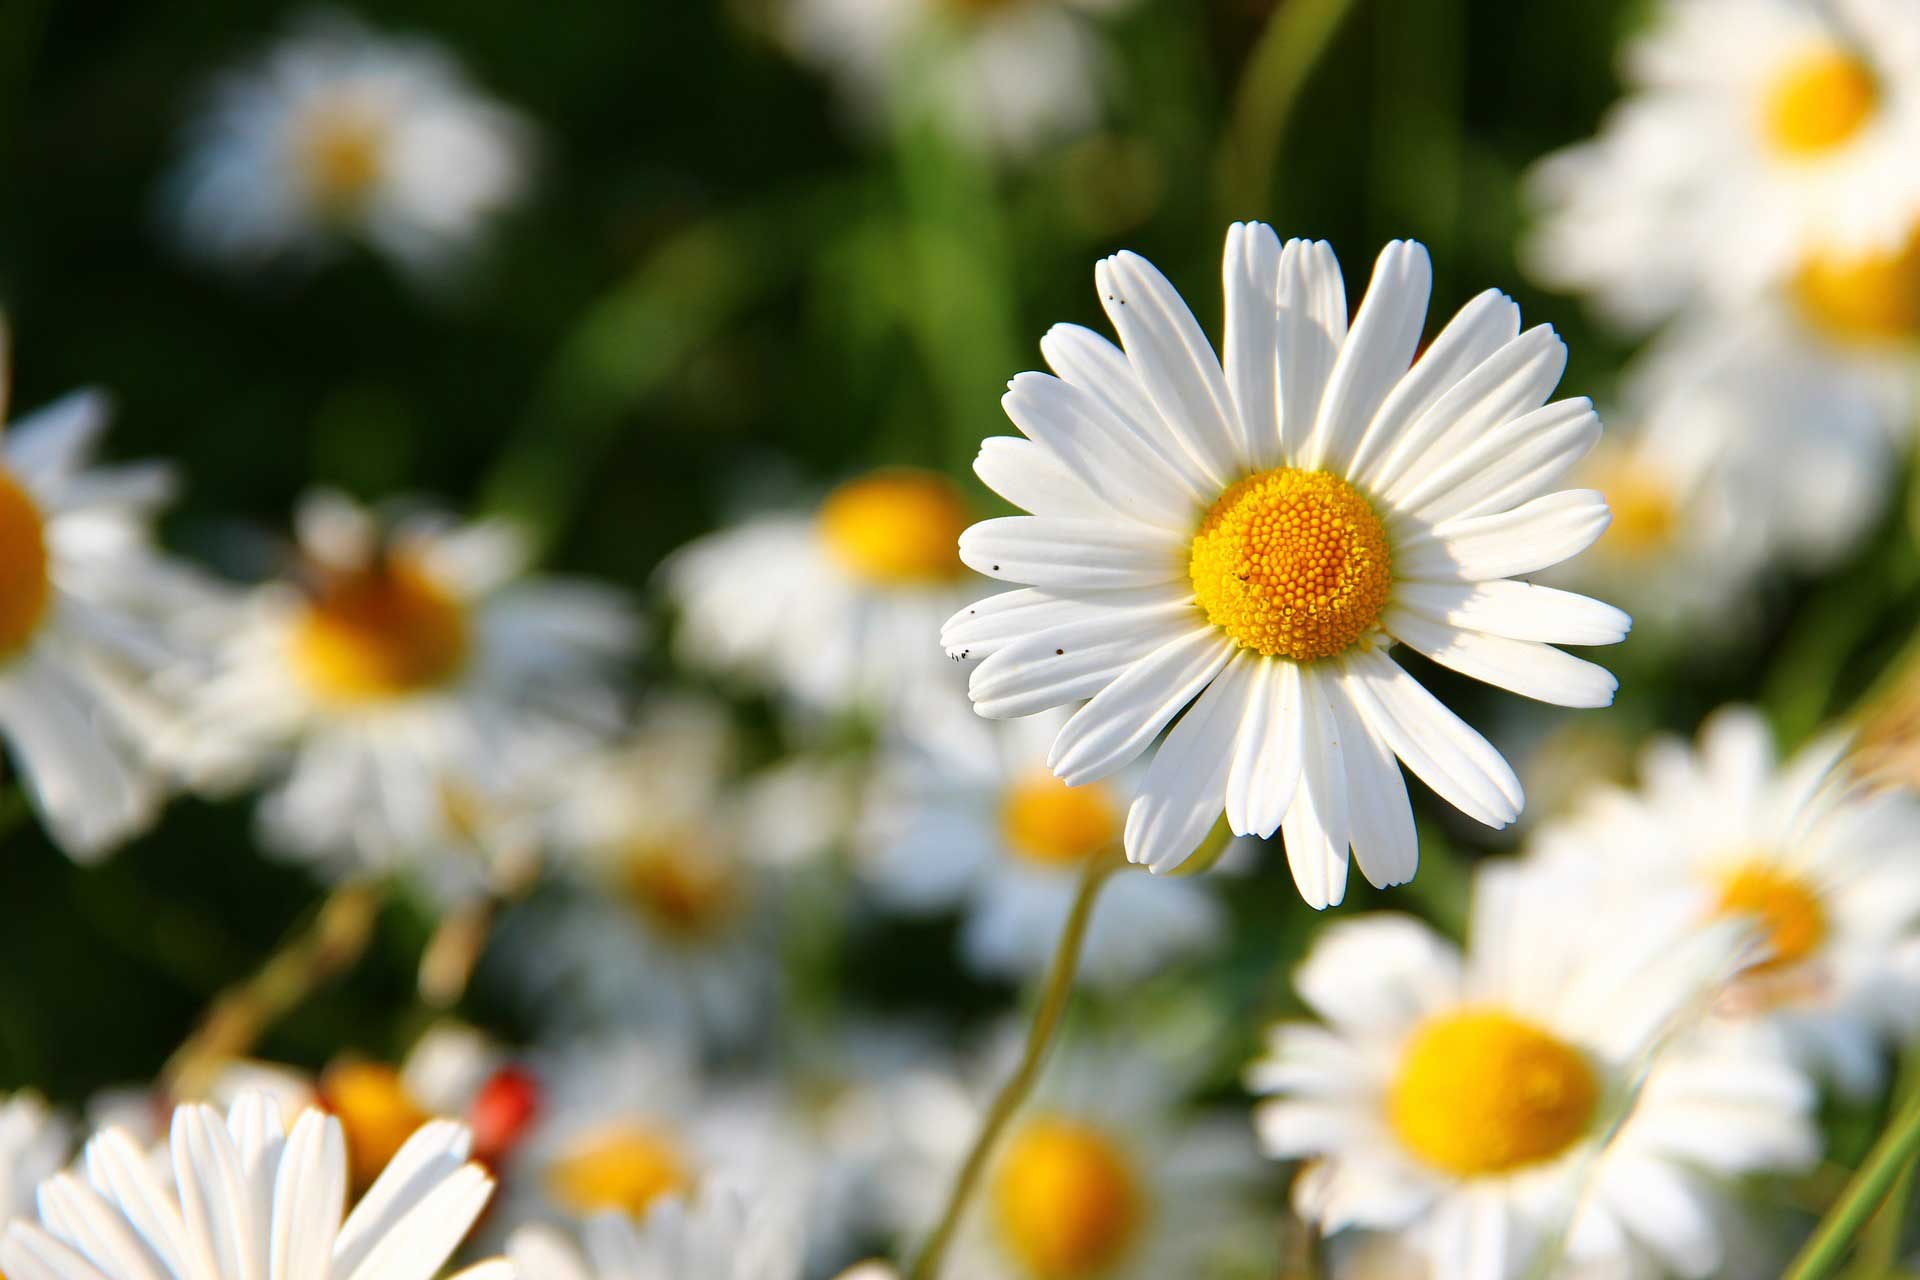 Learn about nature spring flowers daisy flowers learn about nature spring flowers daisy flowers thumbnail mightylinksfo